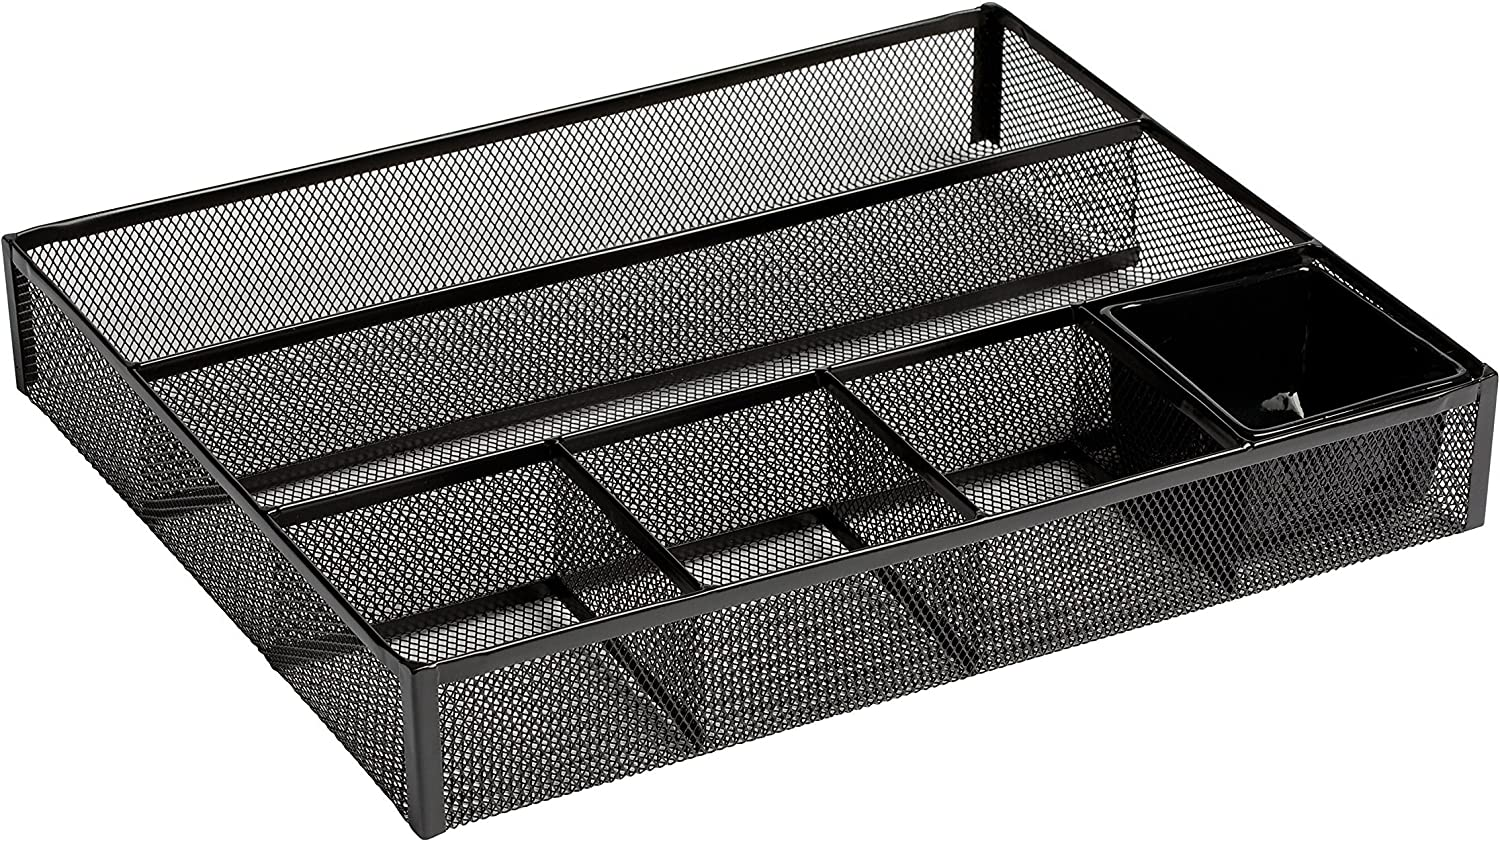 New 22131 Metal Mesh 11.75 inches Long by 15.25 inches Wide Rolodex Deep Desk Drawer Organizer Black